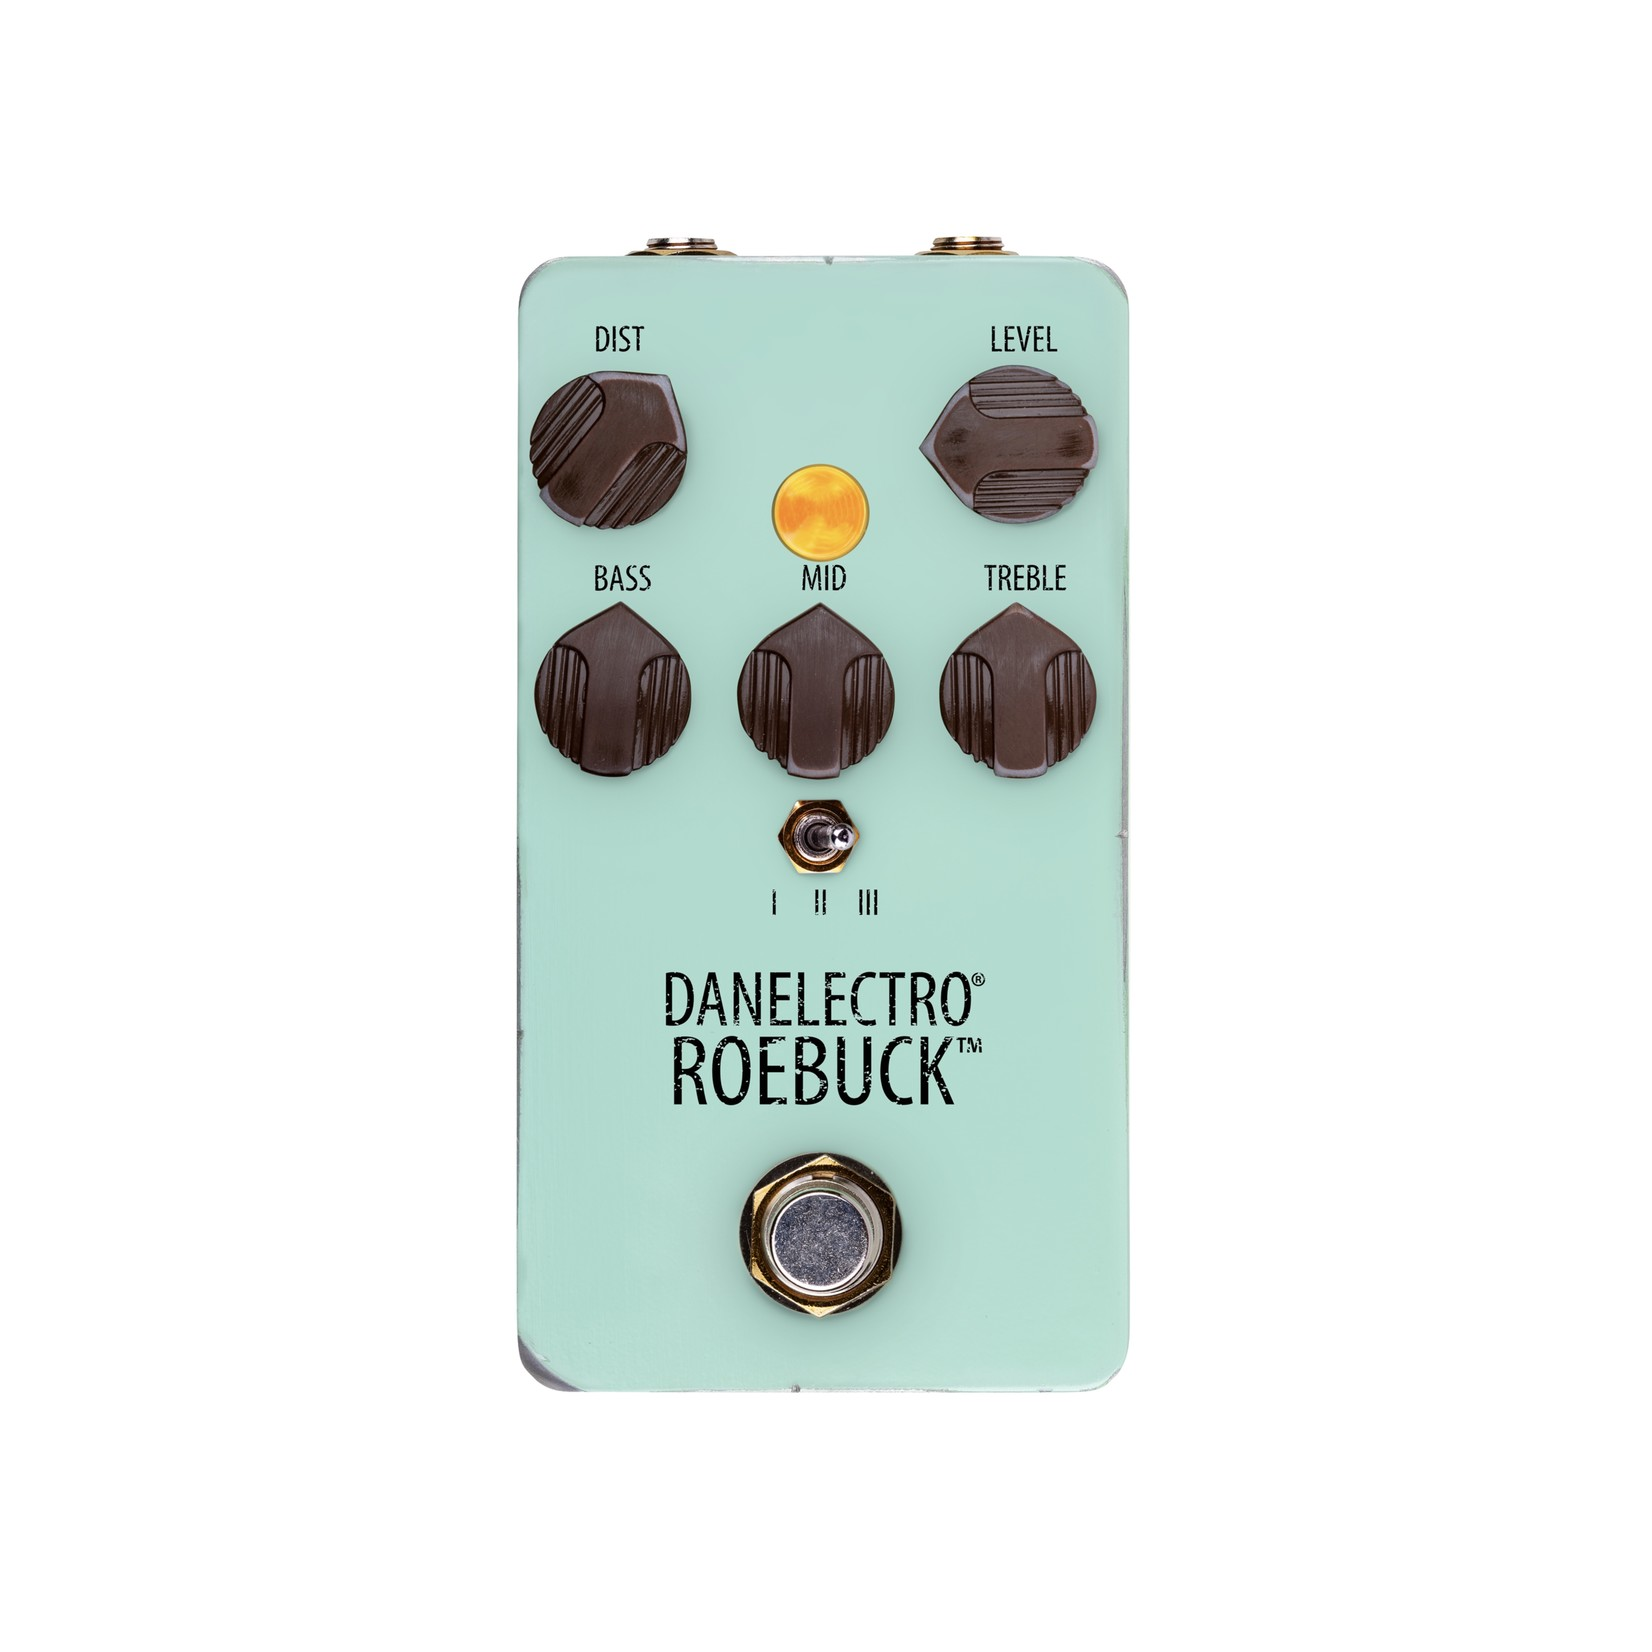 Danelectro Danelectro Roebuck Distortion (Recreation of 1990's Ibanez Mostortion) - New for 2020, In Stock Now